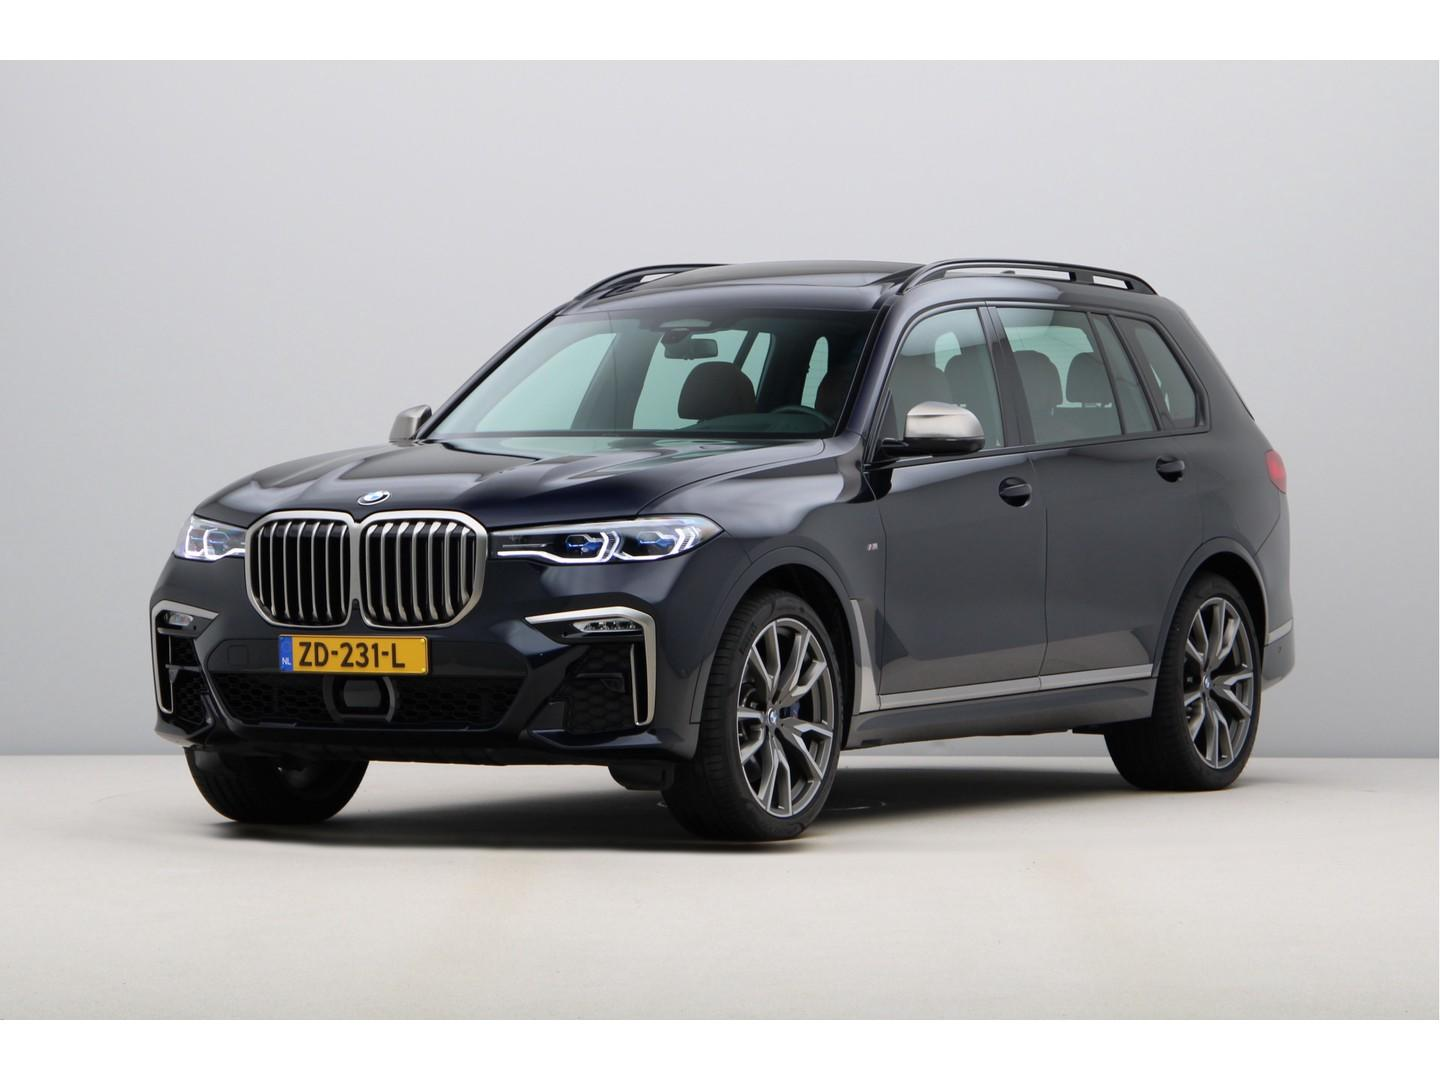 Bmw X7 M50d high executive